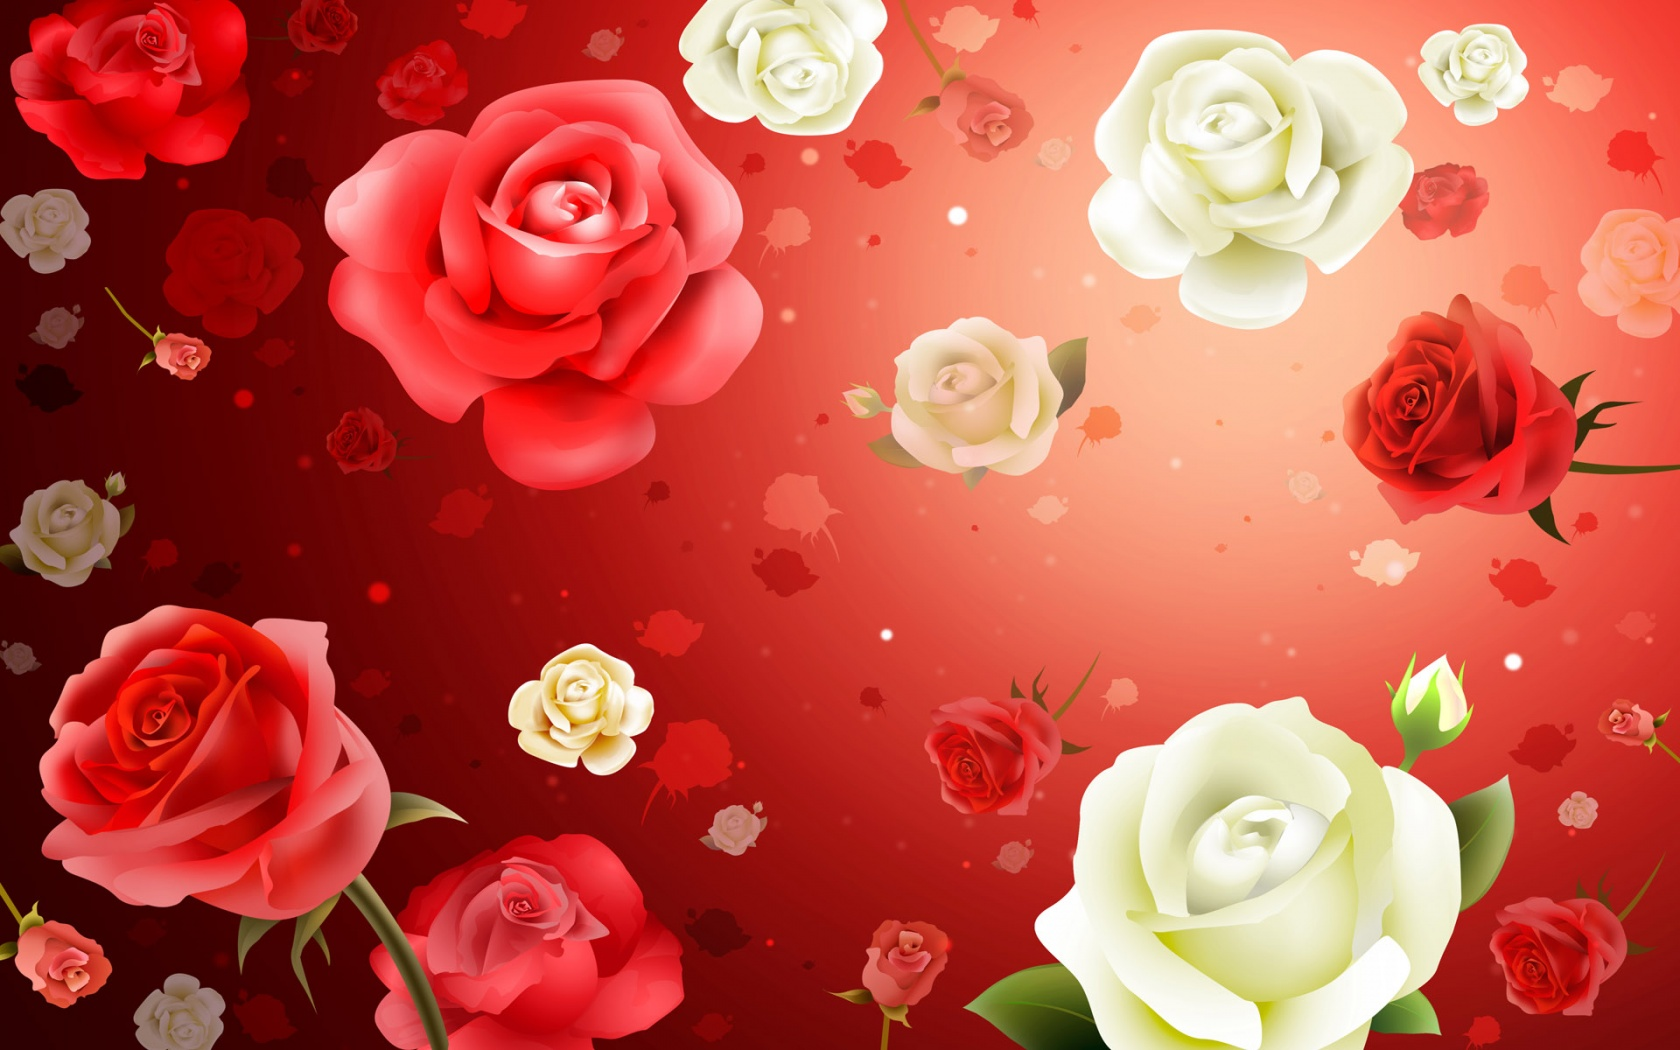 Roses HD Widescreen 307.17 Kb